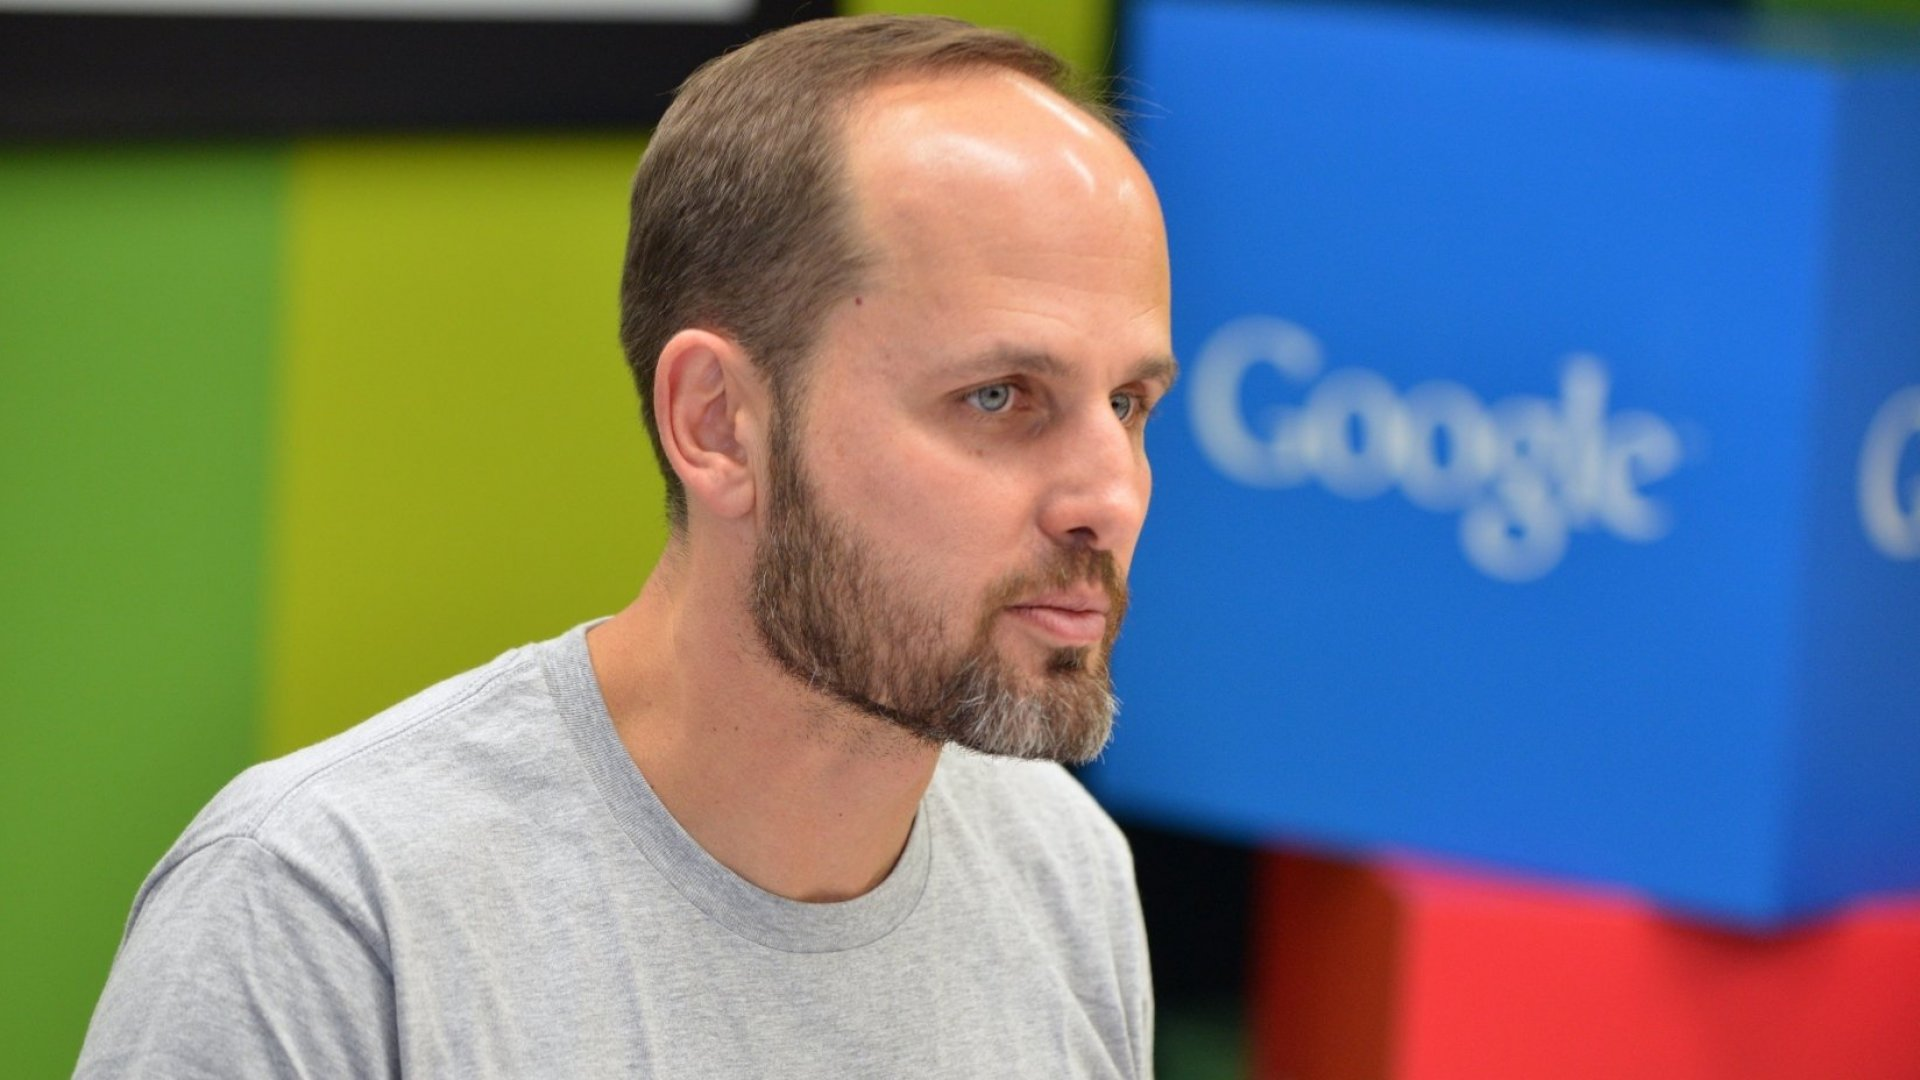 Google's Former Head of HR Issues a Warning That All Business Owners and Leadership Teams Should Read